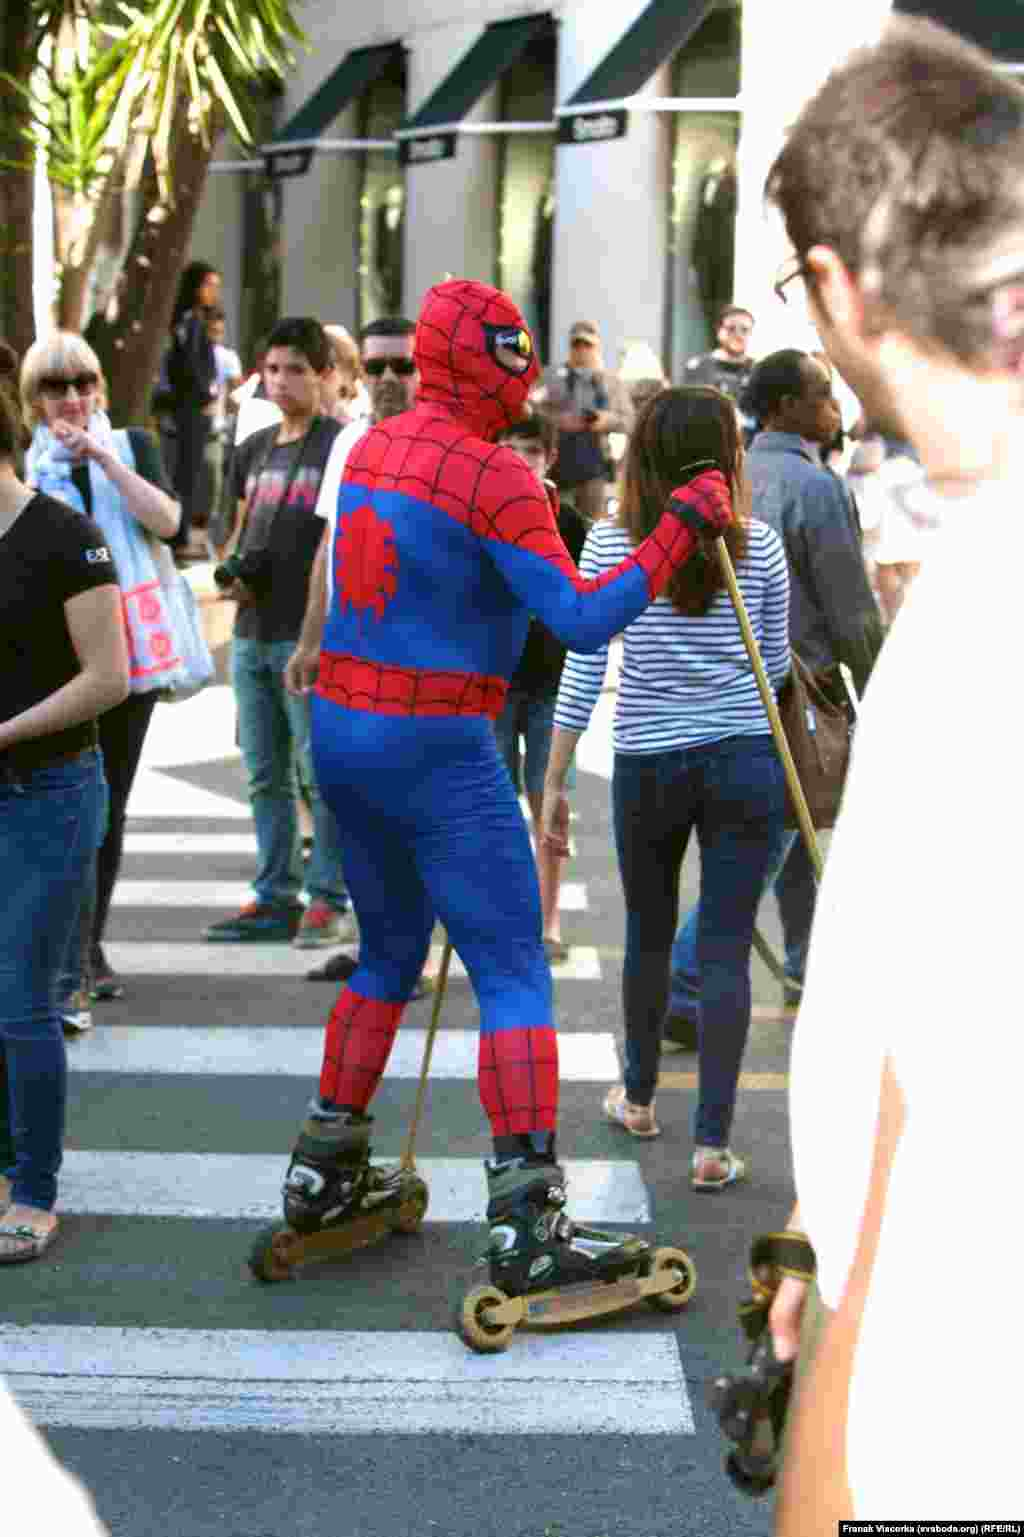 A man in a Spiderman costume skates through the streets of Cannes.